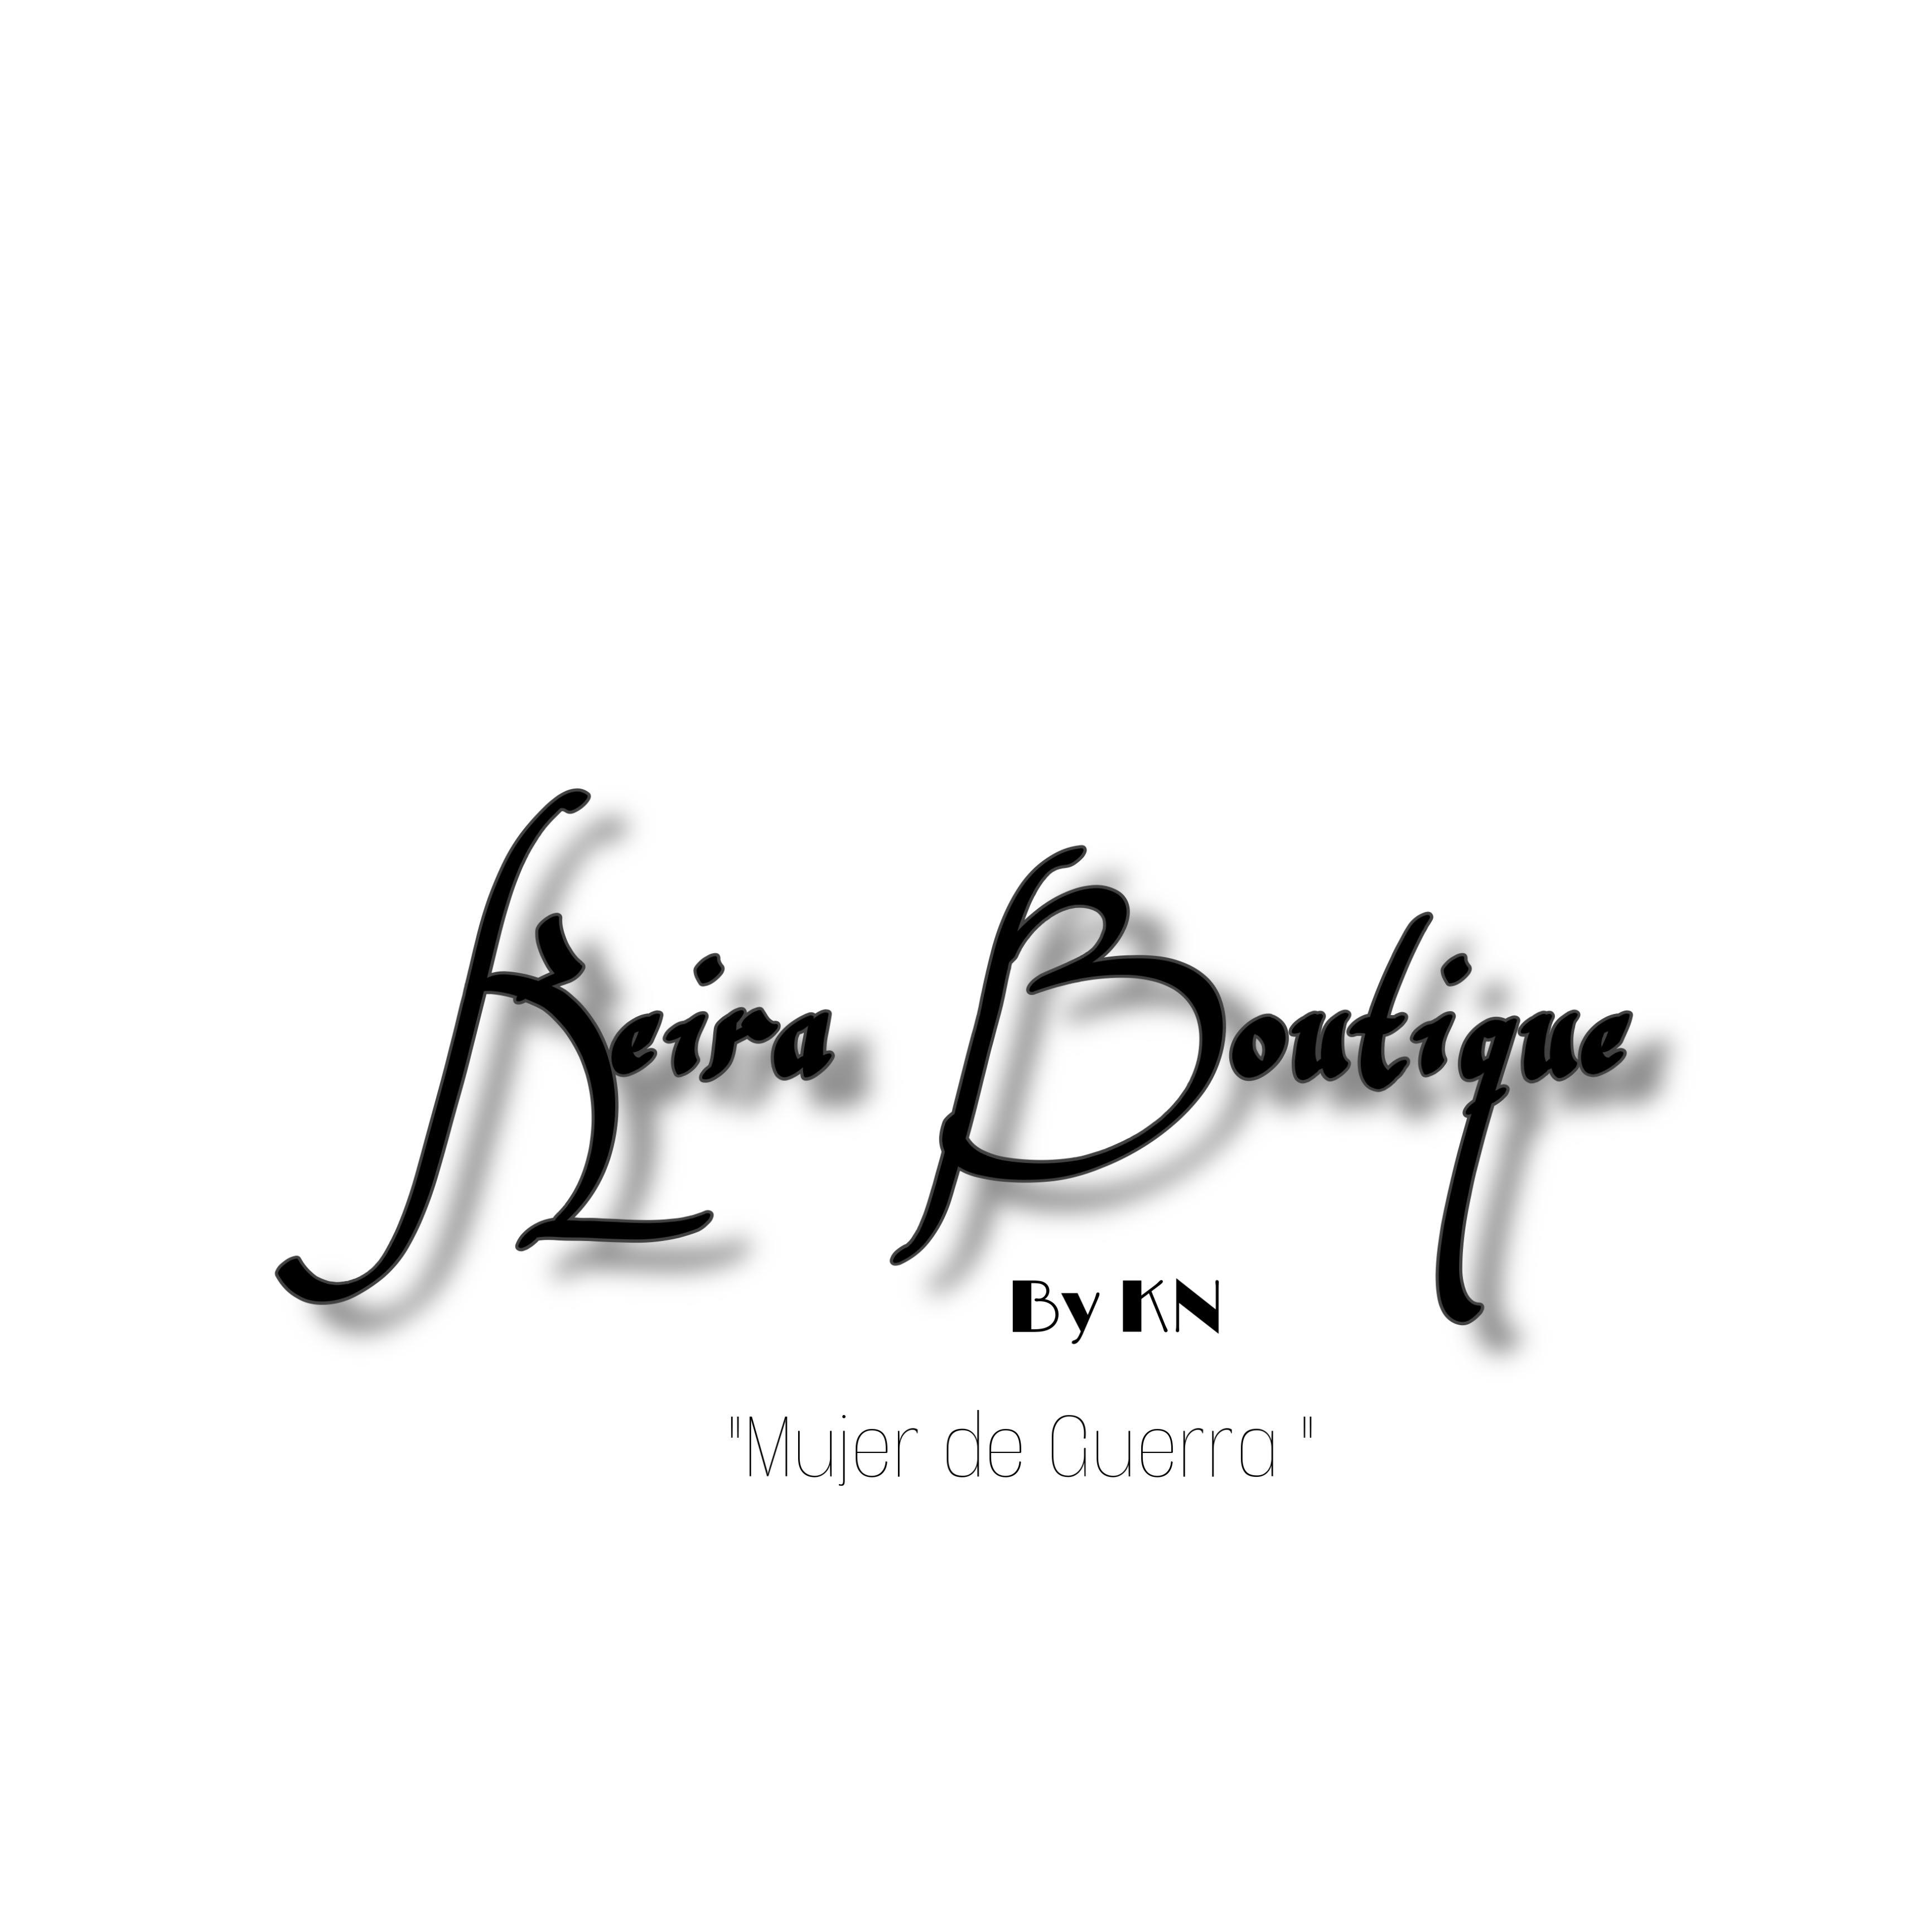 Keira Boutique by KN